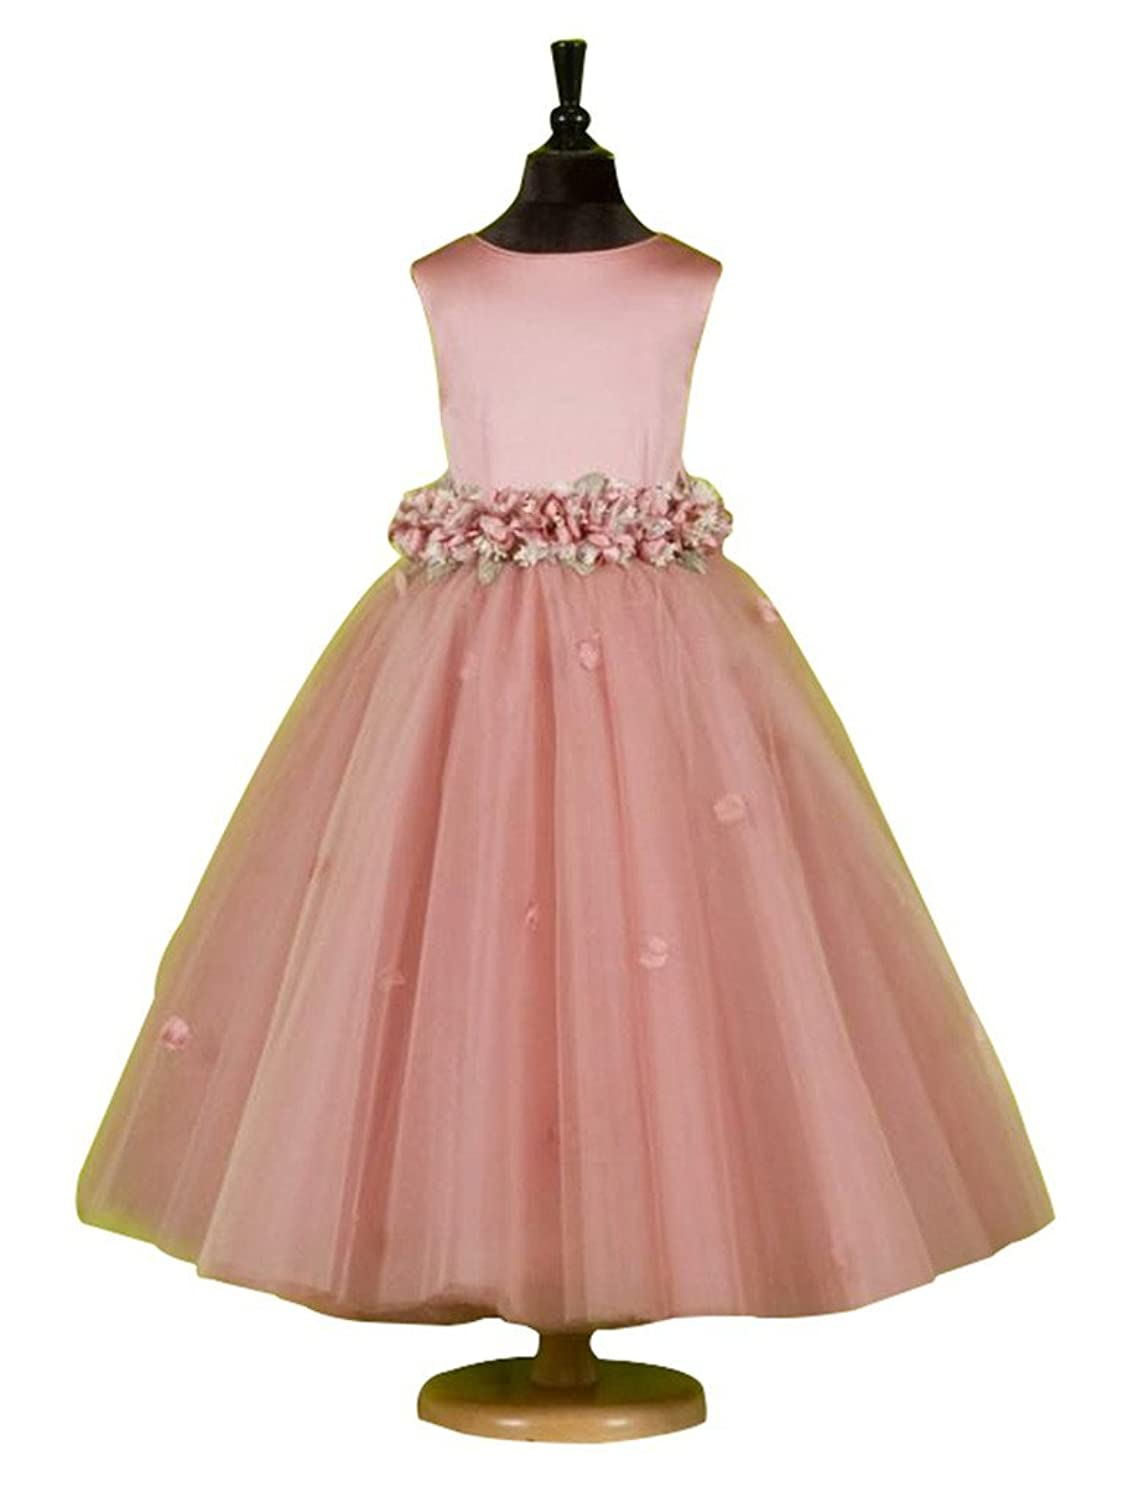 CLOCOLOR Girl's A-line Tulle Round Neckline Ankle Length Waist Flower Girl Dress for Weddings